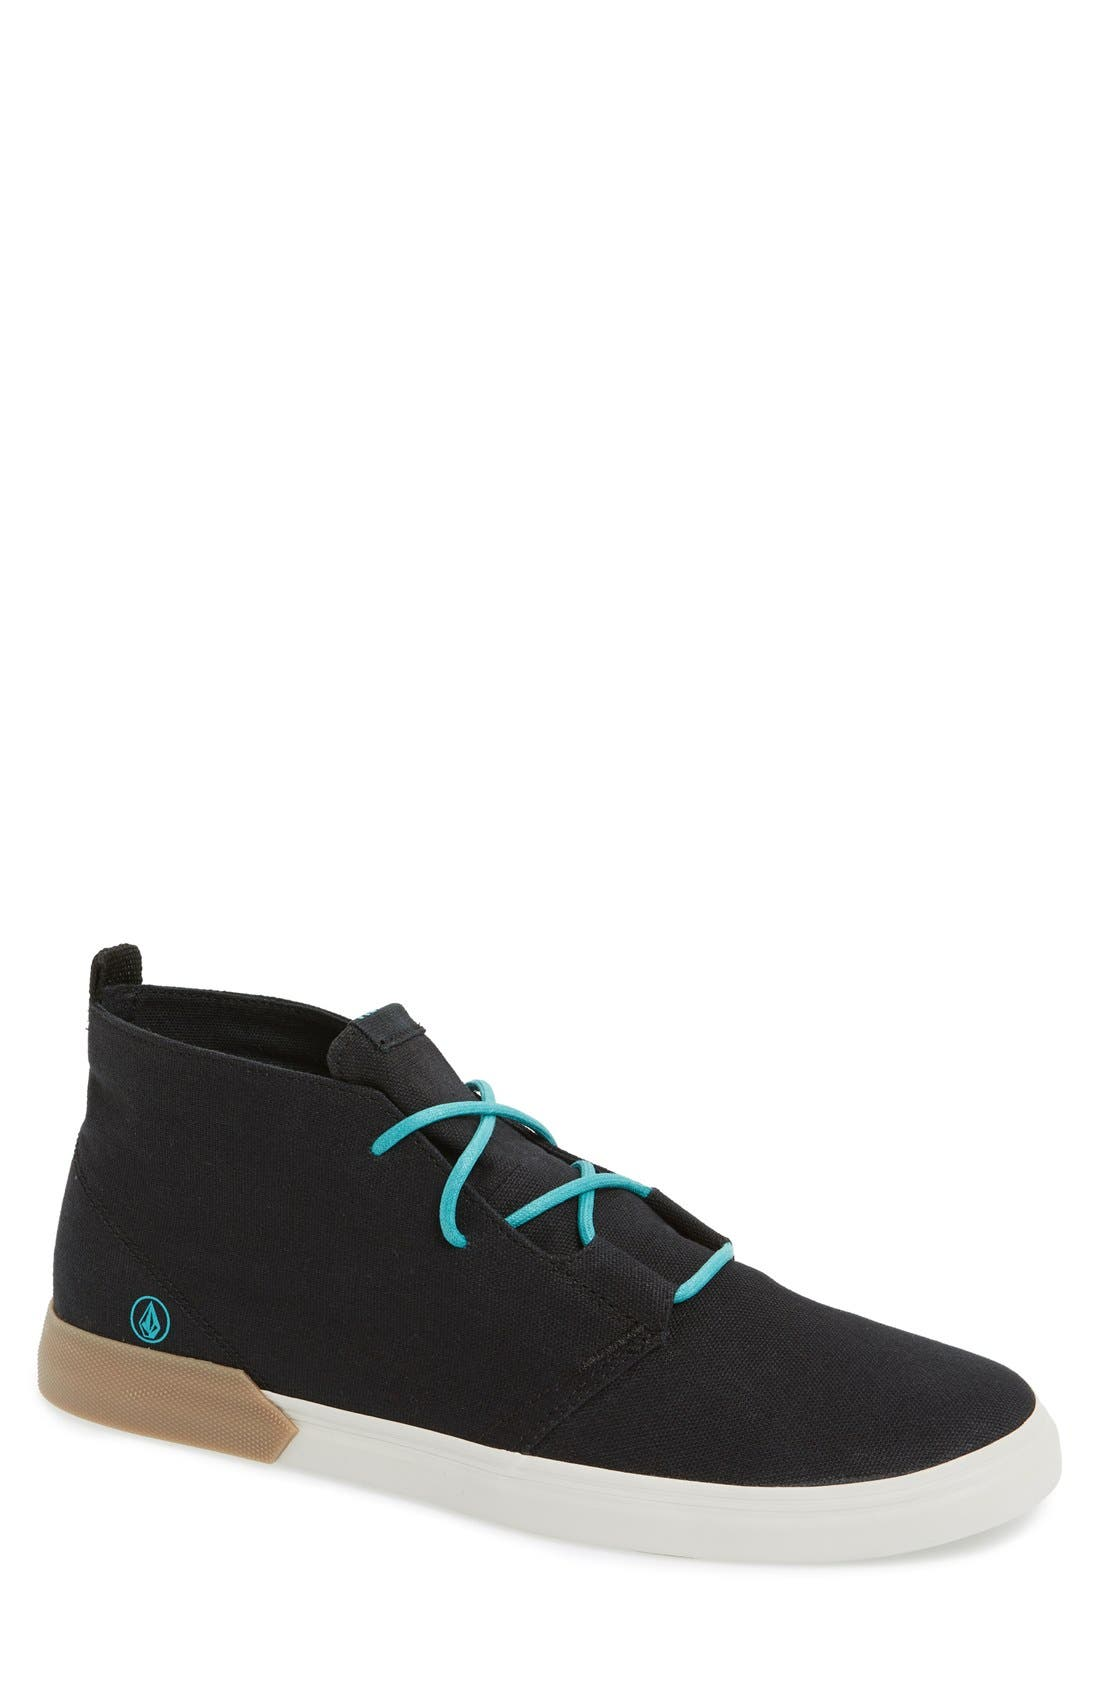 Main Image - Volcom 'De Fray' High Top Sneaker